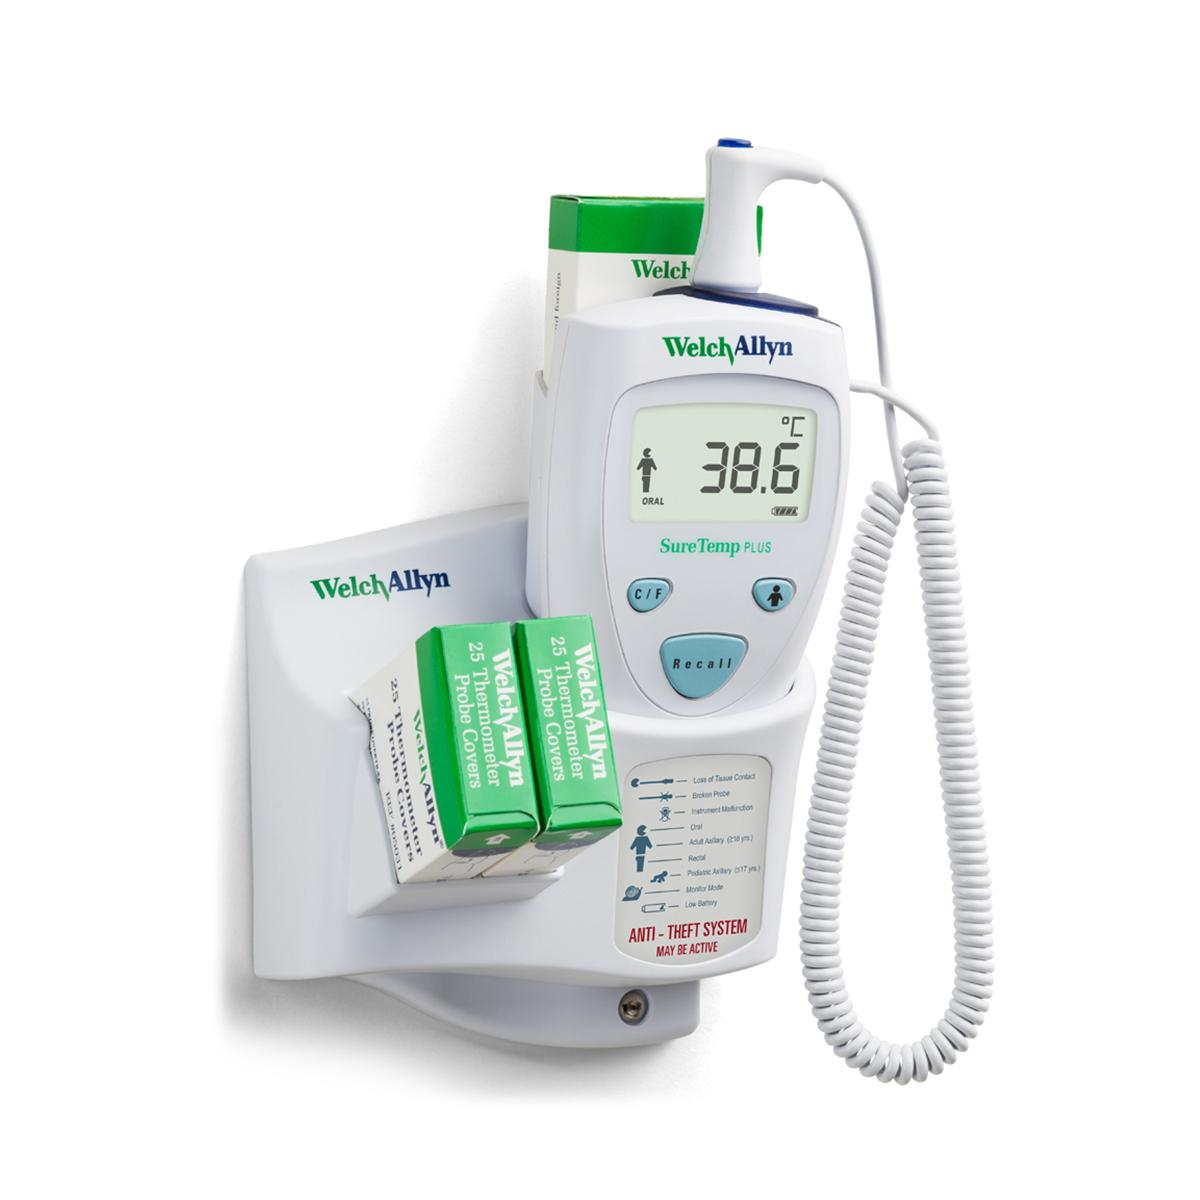 SureTemp Plus 690 Thermometer on wall mount, Celsius reading shown